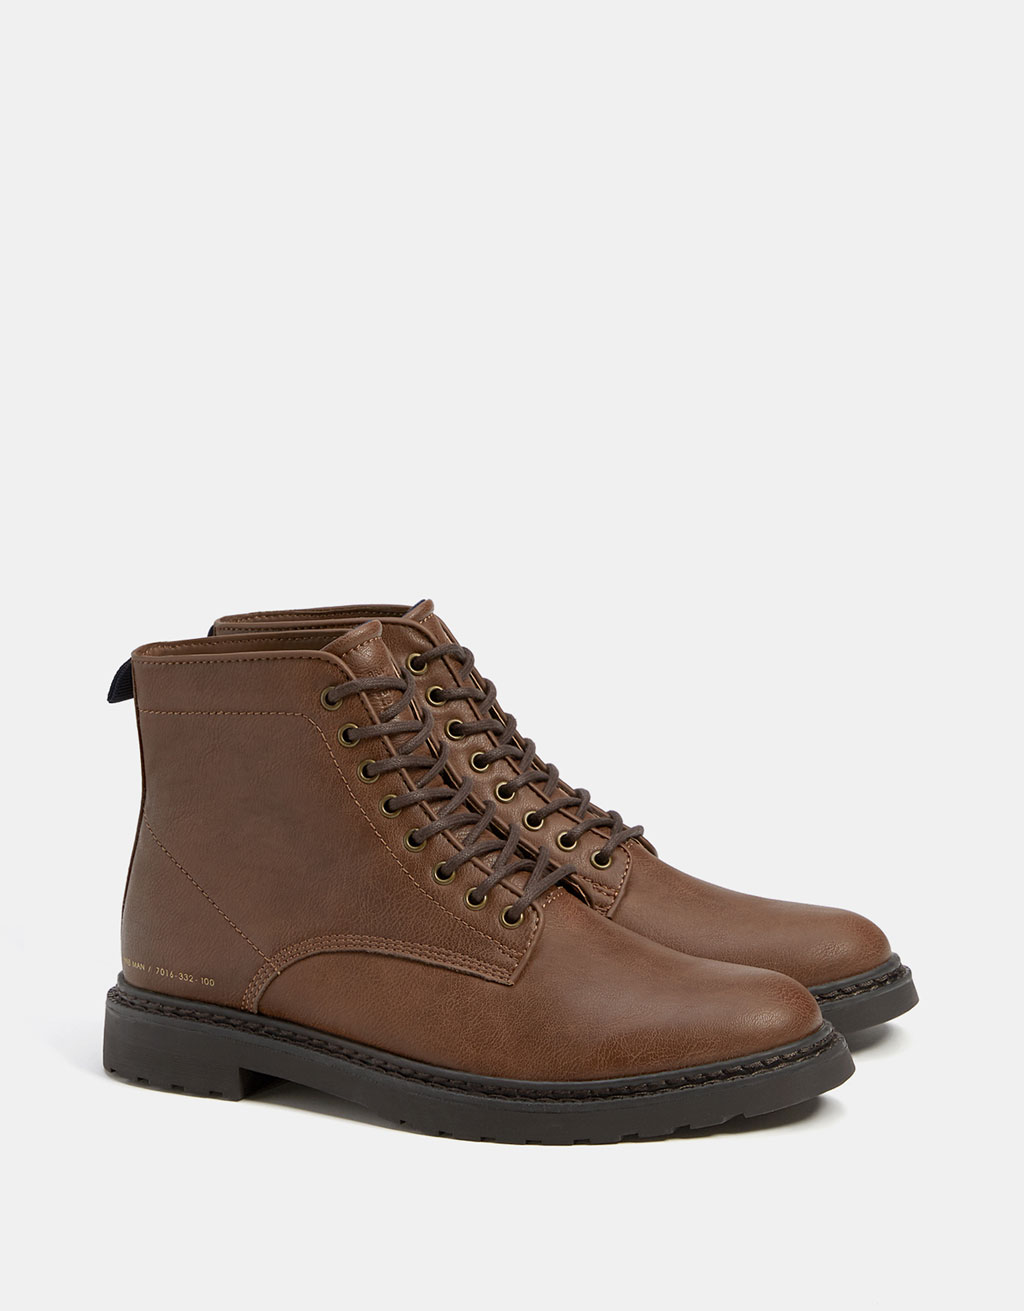 Smart men's lace-up boots